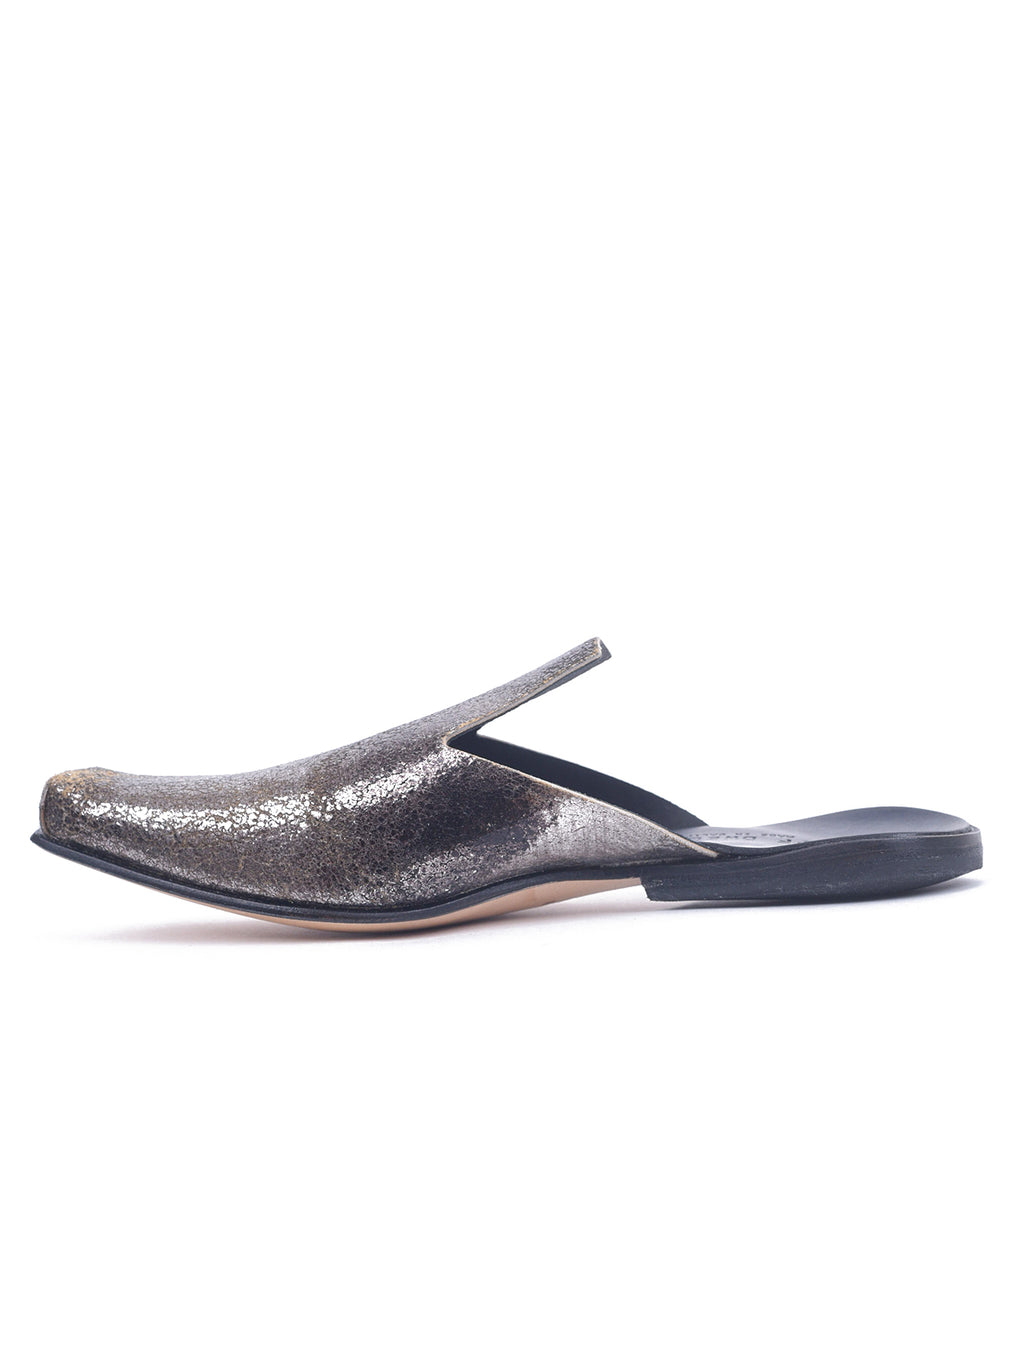 Cliff Dweller Ethos Sandals, Silver